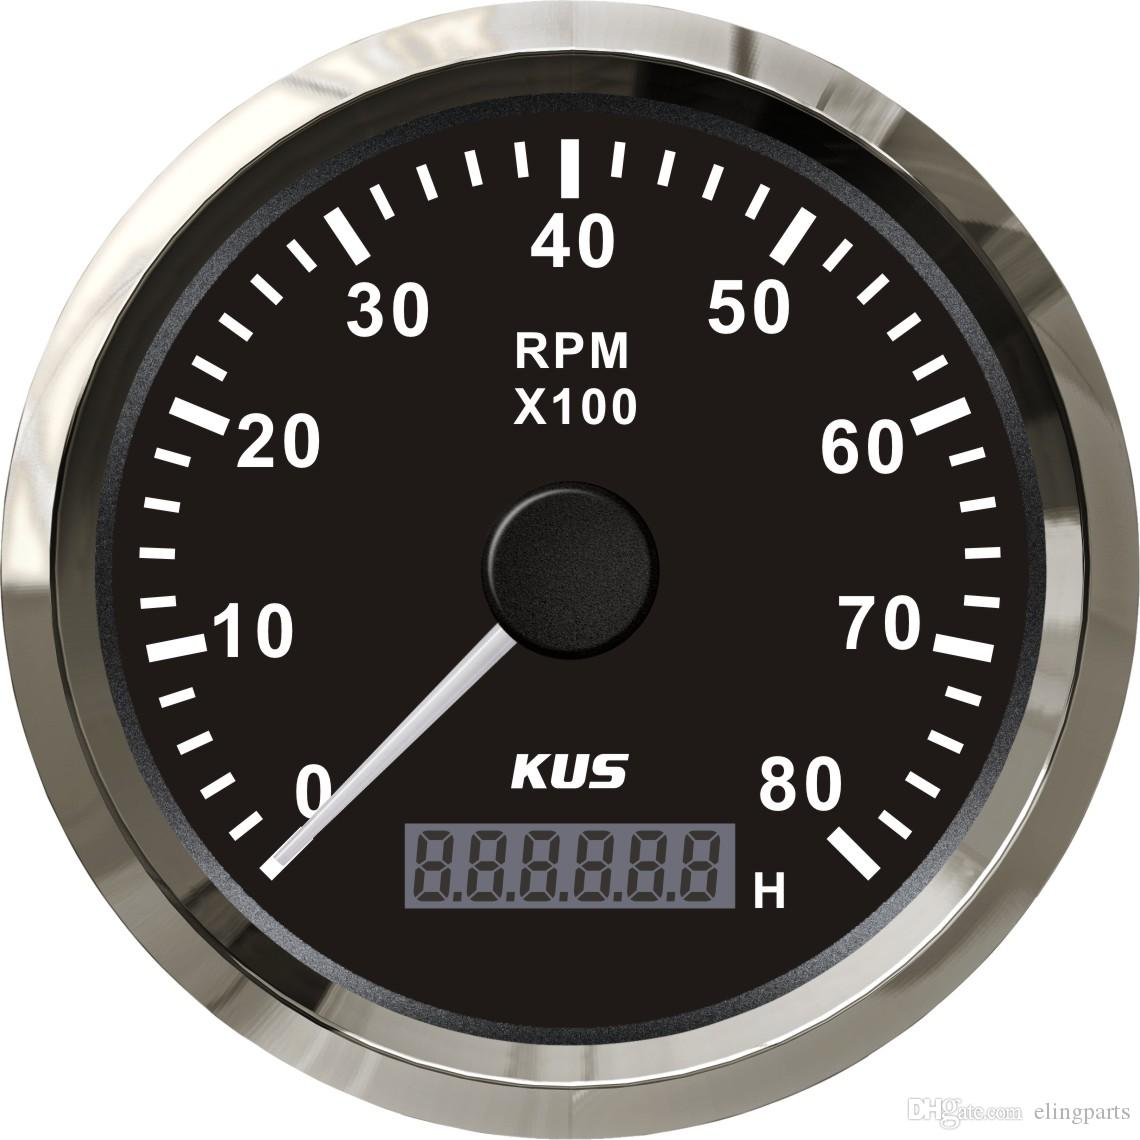 hight resolution of 2019 kus marine tachometer gauge with hour meter boat rpm tachometer 8000rpm 12v 24v with backlight from elingparts 61 61 dhgate com